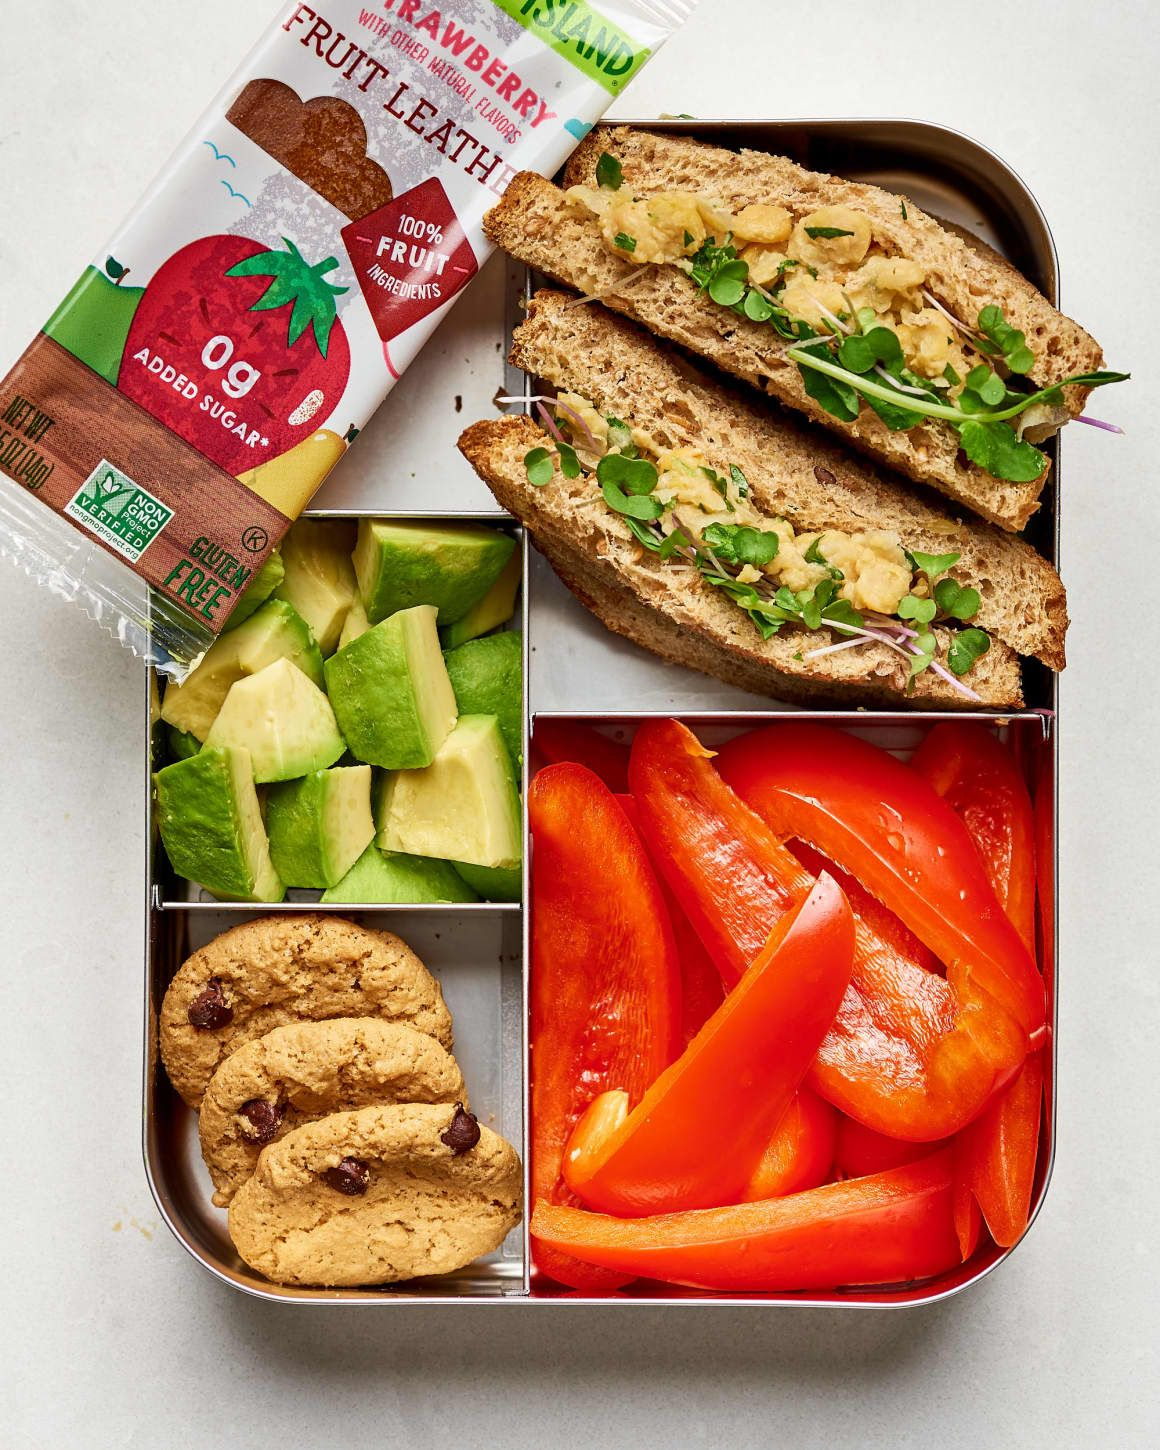 10 Easy Vegan Lunch Box Ideas Eating Clean Vegan Lunch